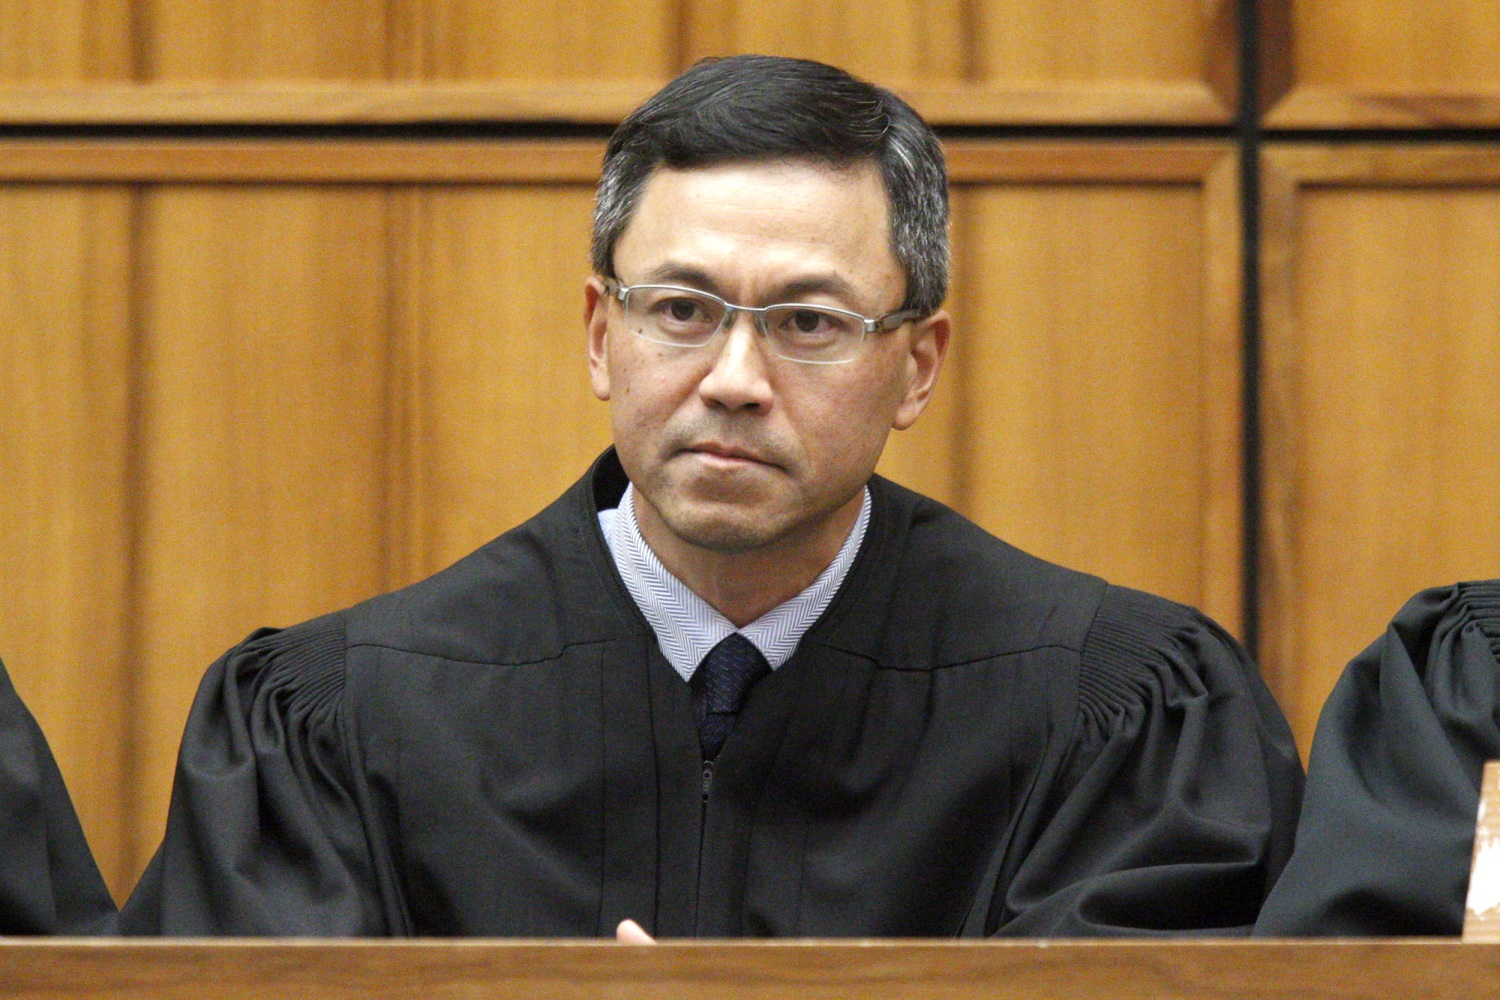 Liberal Judge Shuts Down Travel Ban, Again